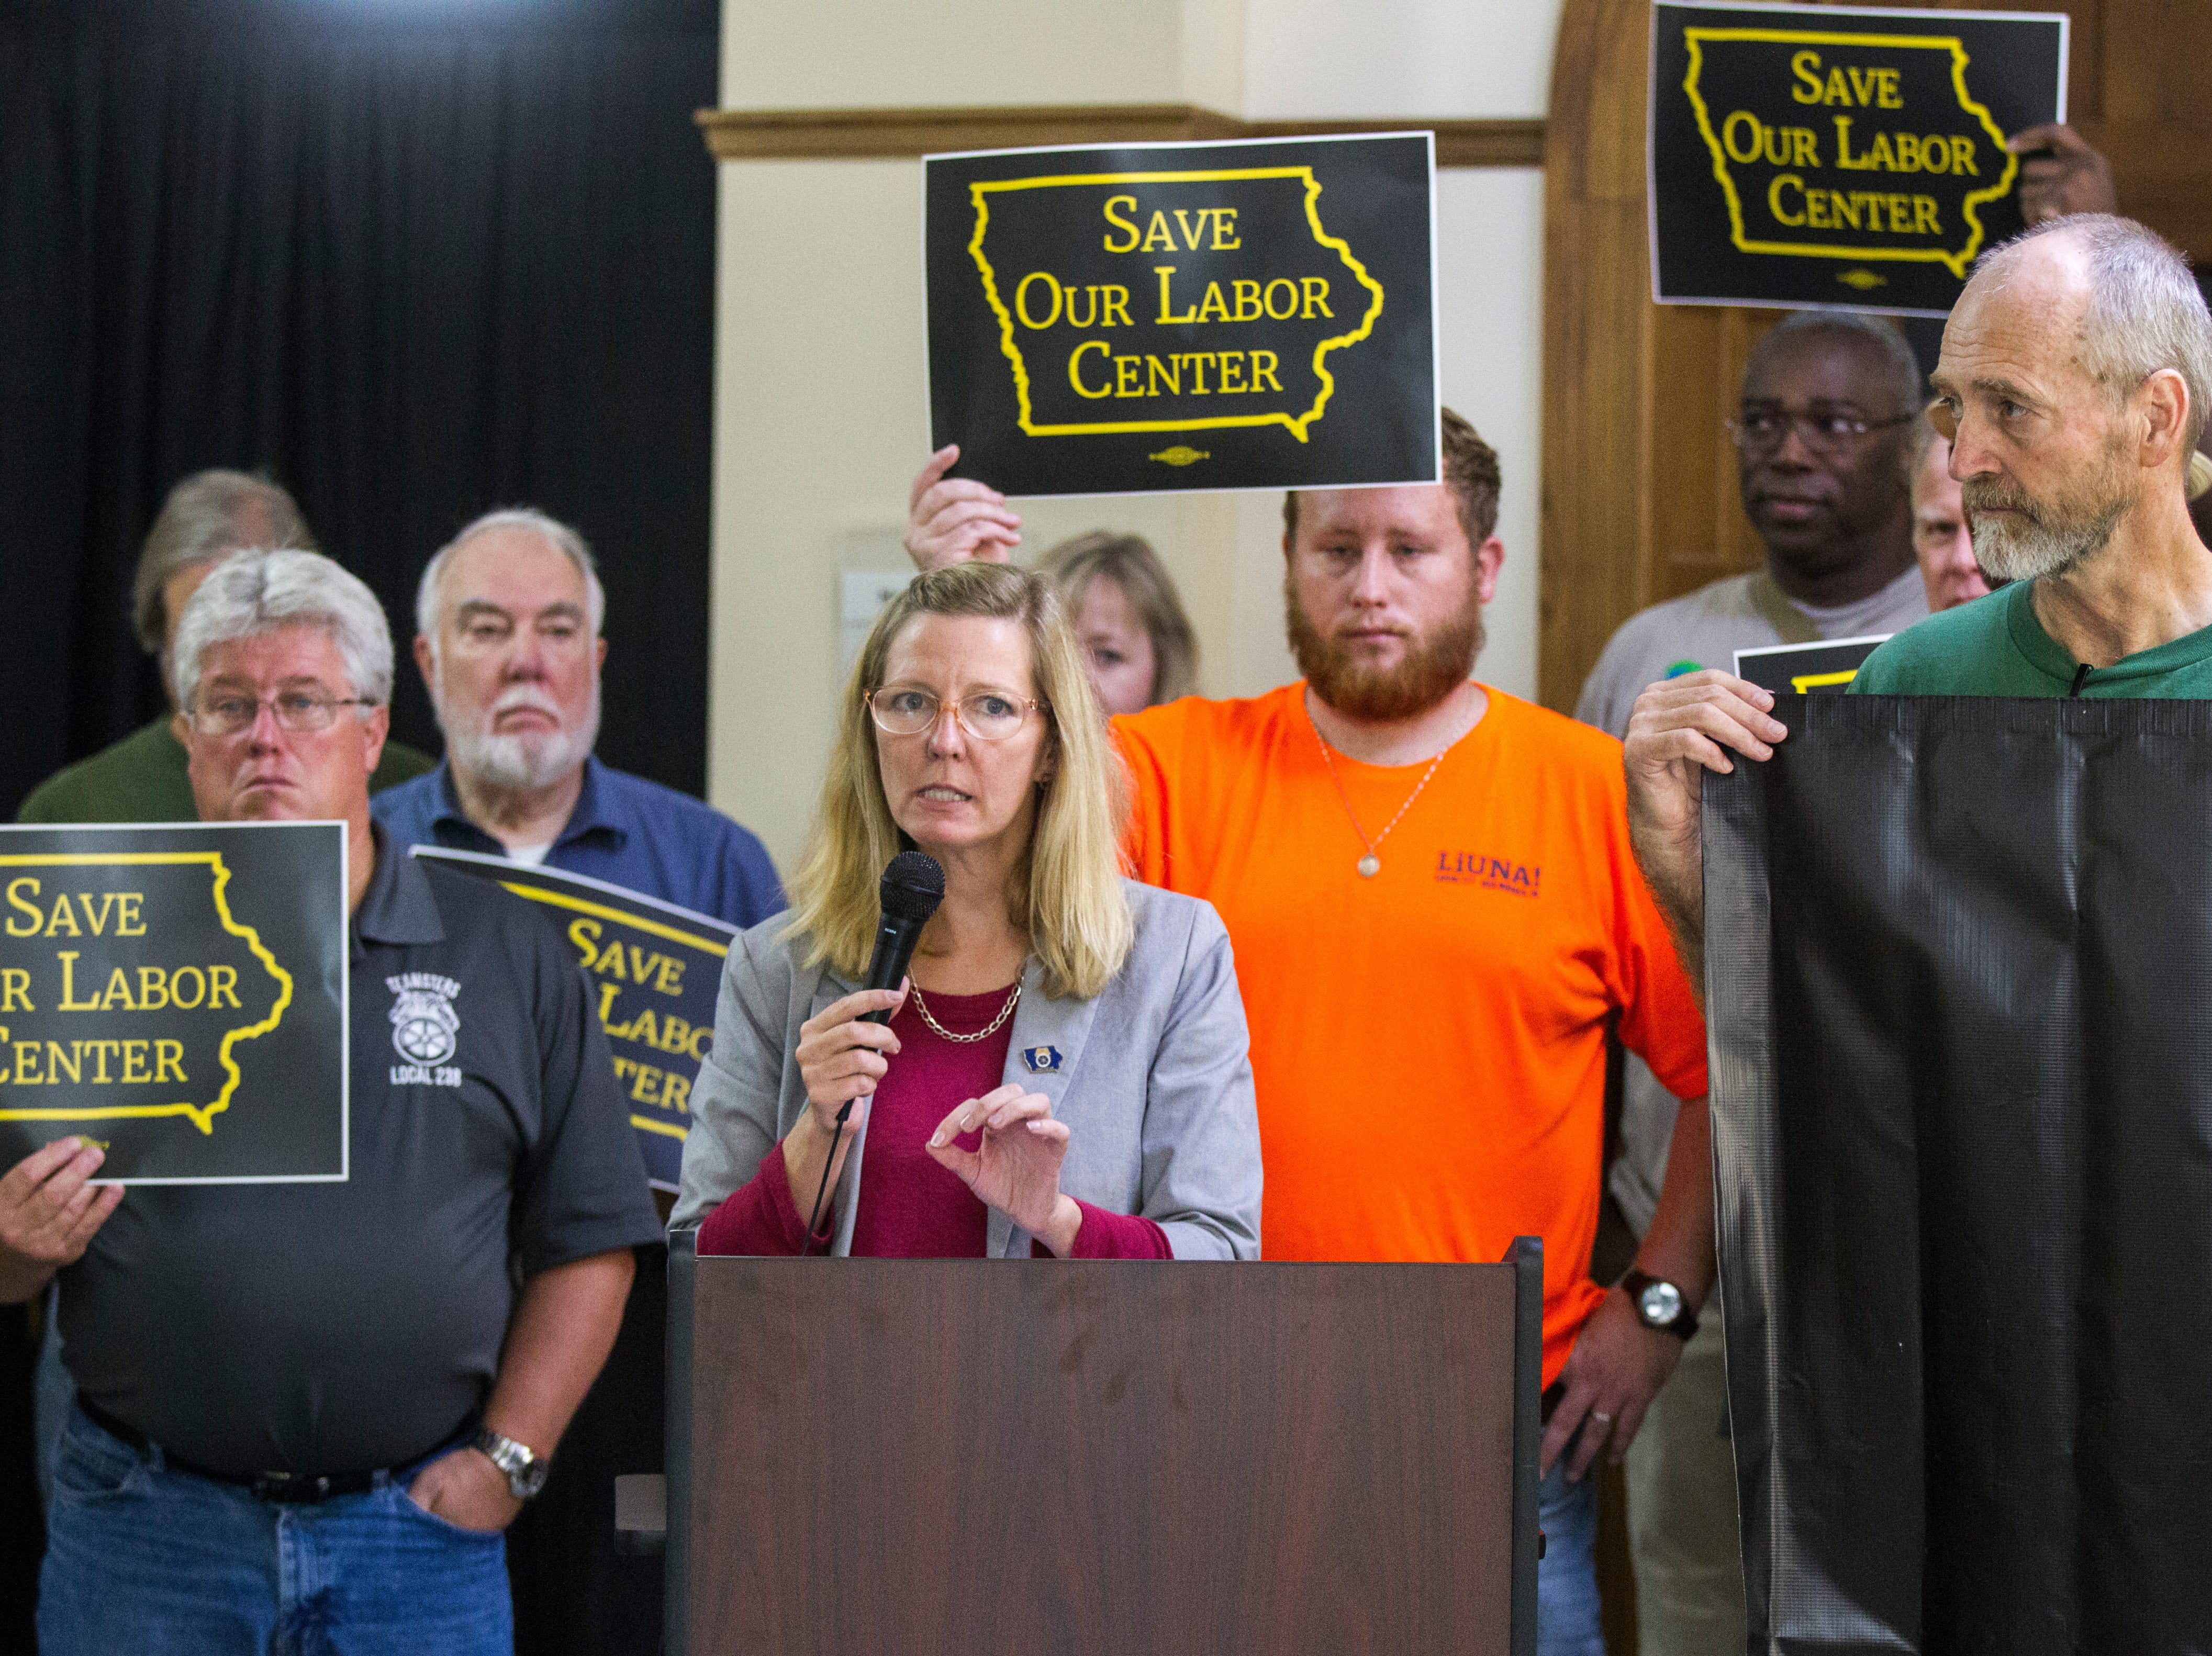 """Tracy Leone, of Teamsters Local 238 and the """"Save Our Labor Center"""" coalition, speaks to supporters after an Iowa Board of Regents meeting on Thursday, Sept. 13, 2018, outside the Iowa Memorial Union on the University of Iowa campus in Iowa City."""